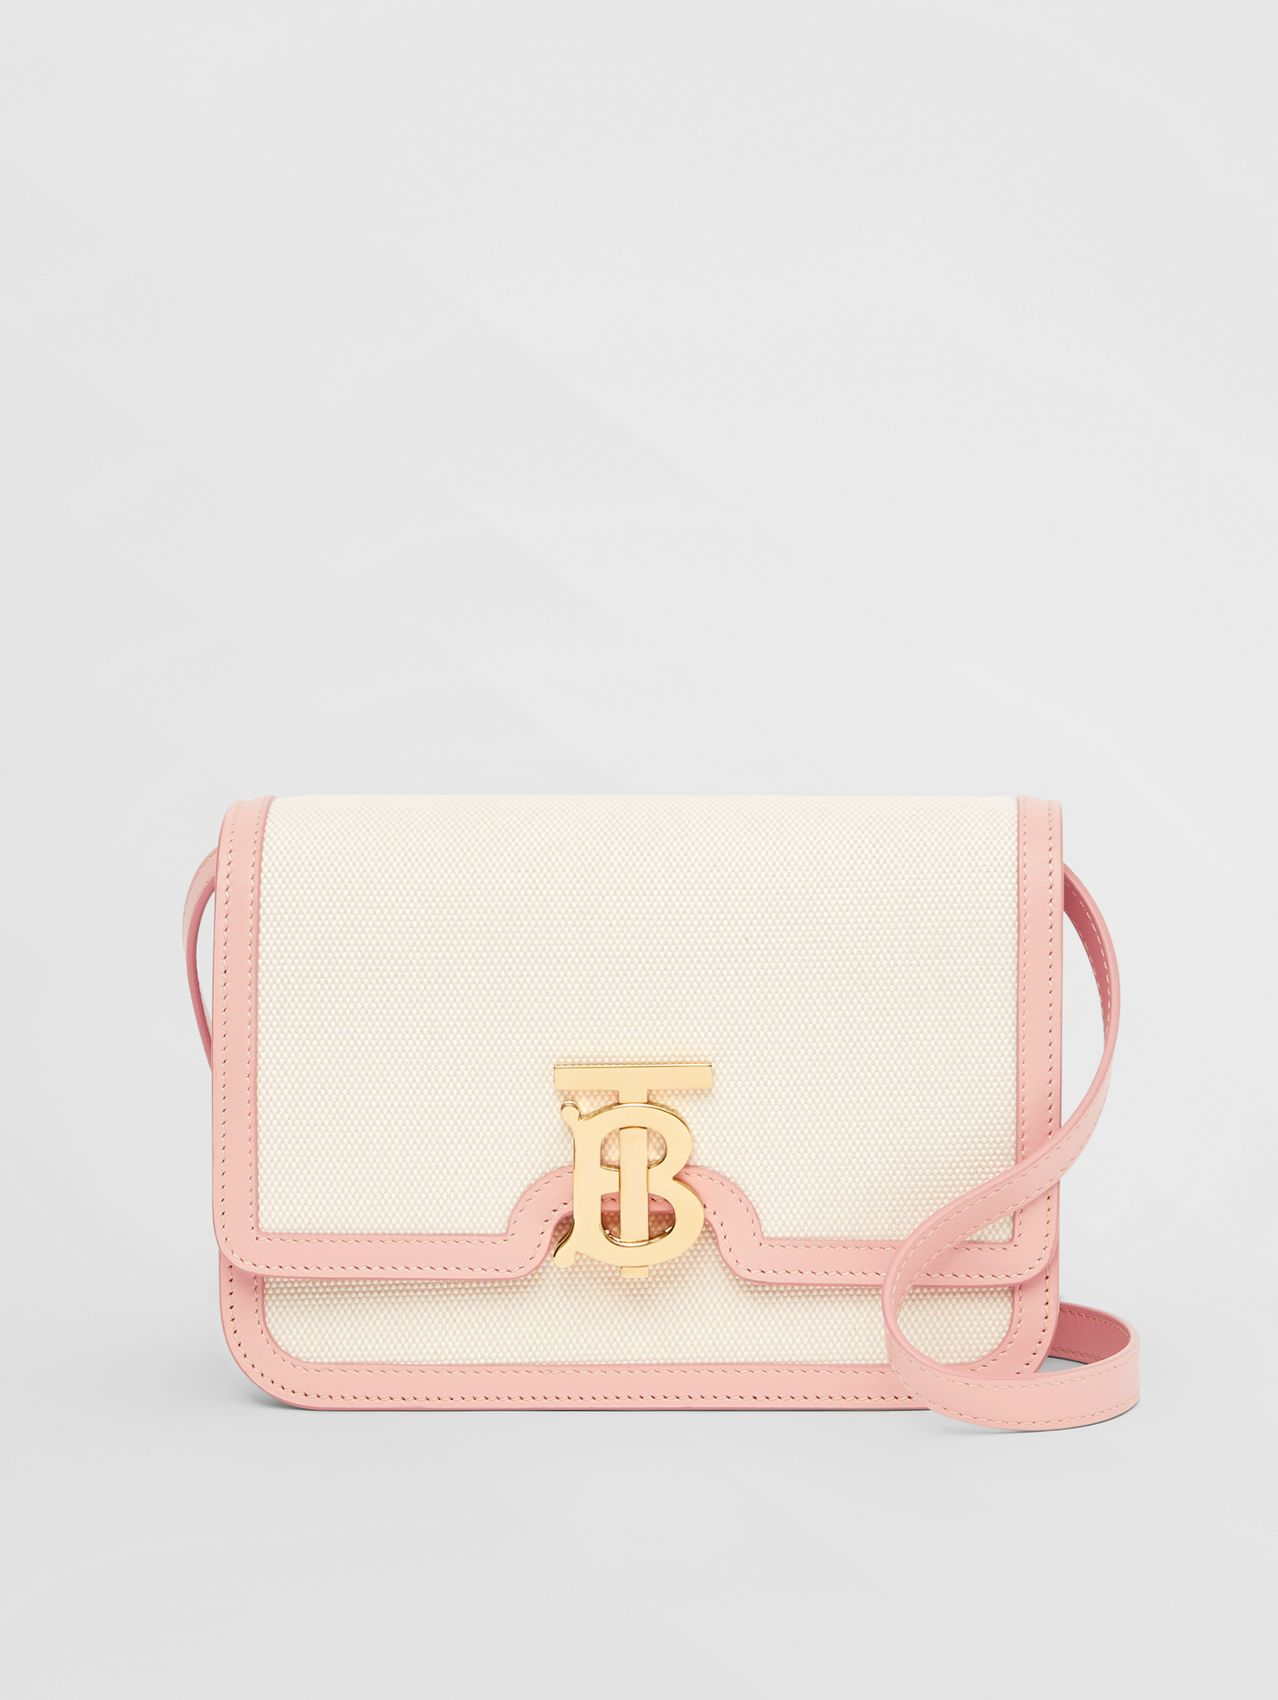 Small Two-tone Canvas and Leather TB Bag in Blush Pink